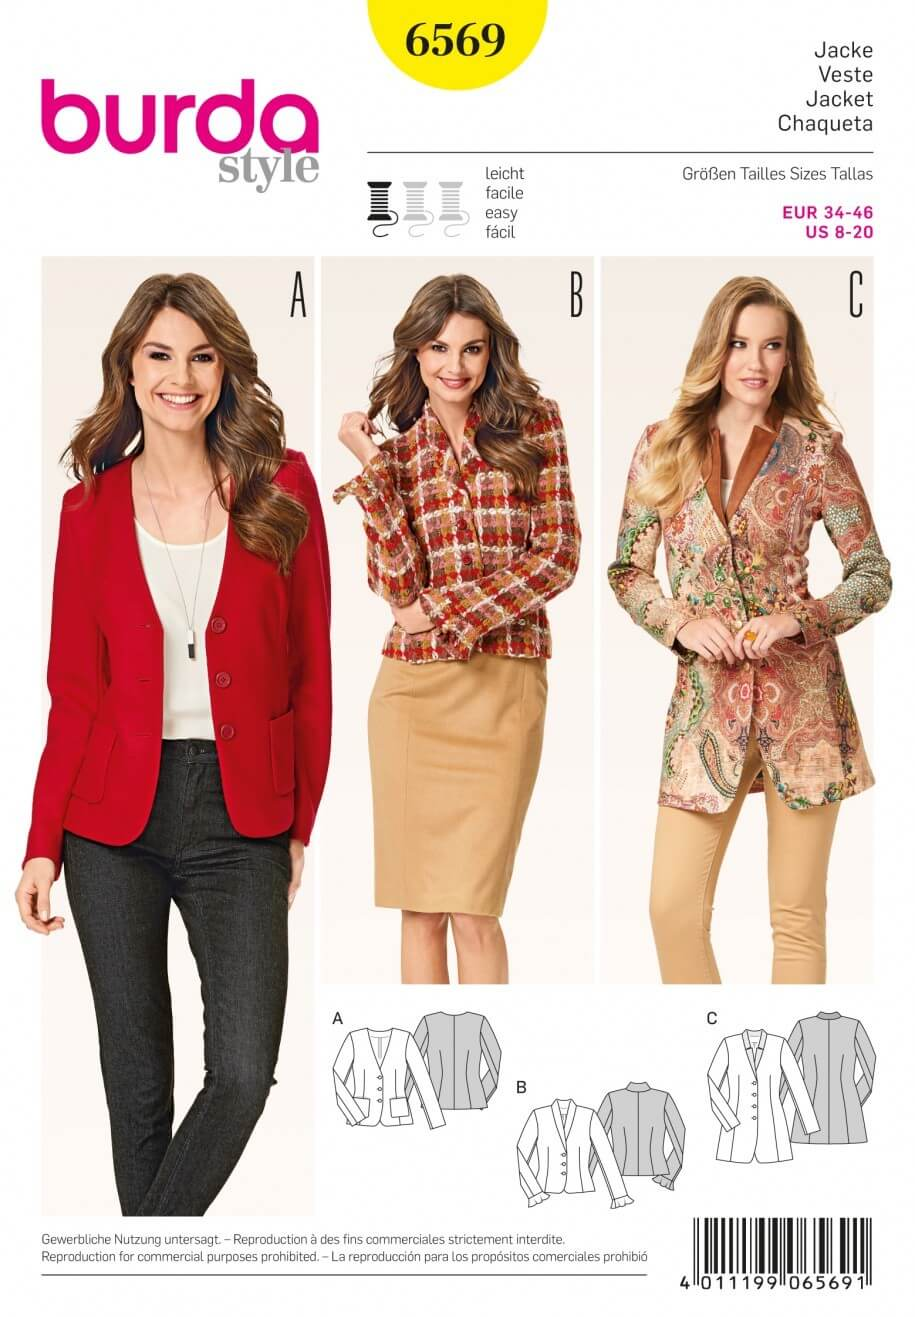 Burda Misses Blazers and Jackets Smart Casual Workwear Sewing Pattern 6569